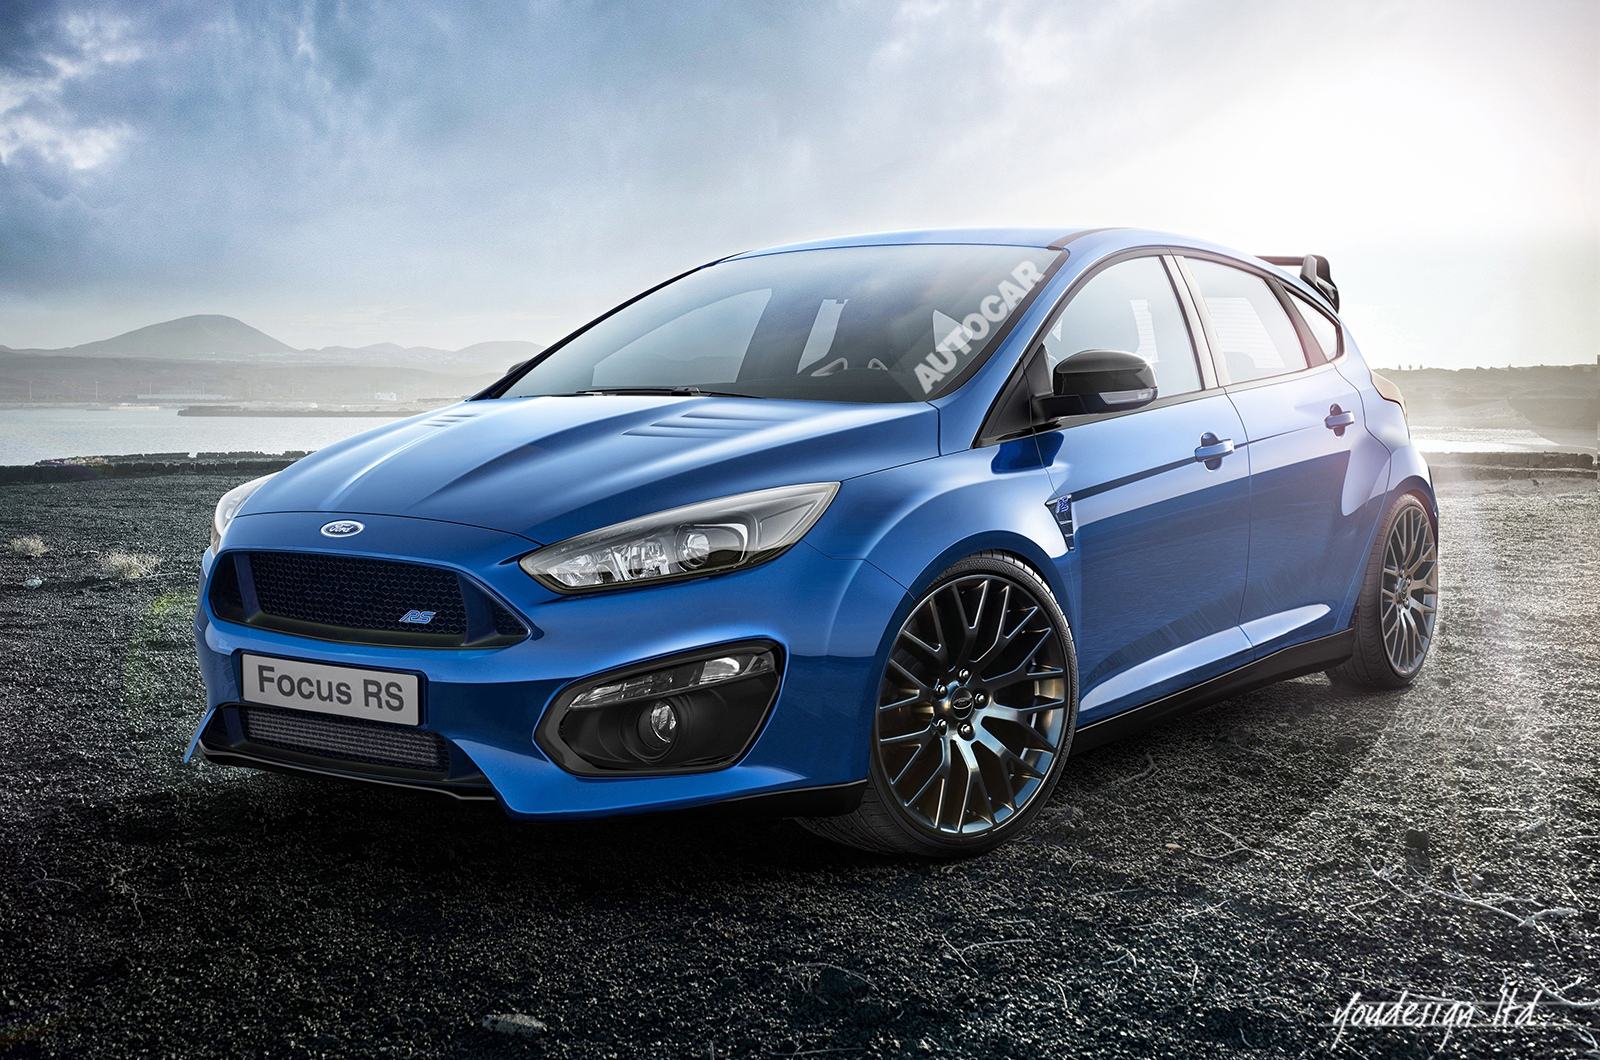 FORD TO REVEAL HIGH-TECH NEW FOCUS WITH SYNC 2 CONNECTIVITY AND